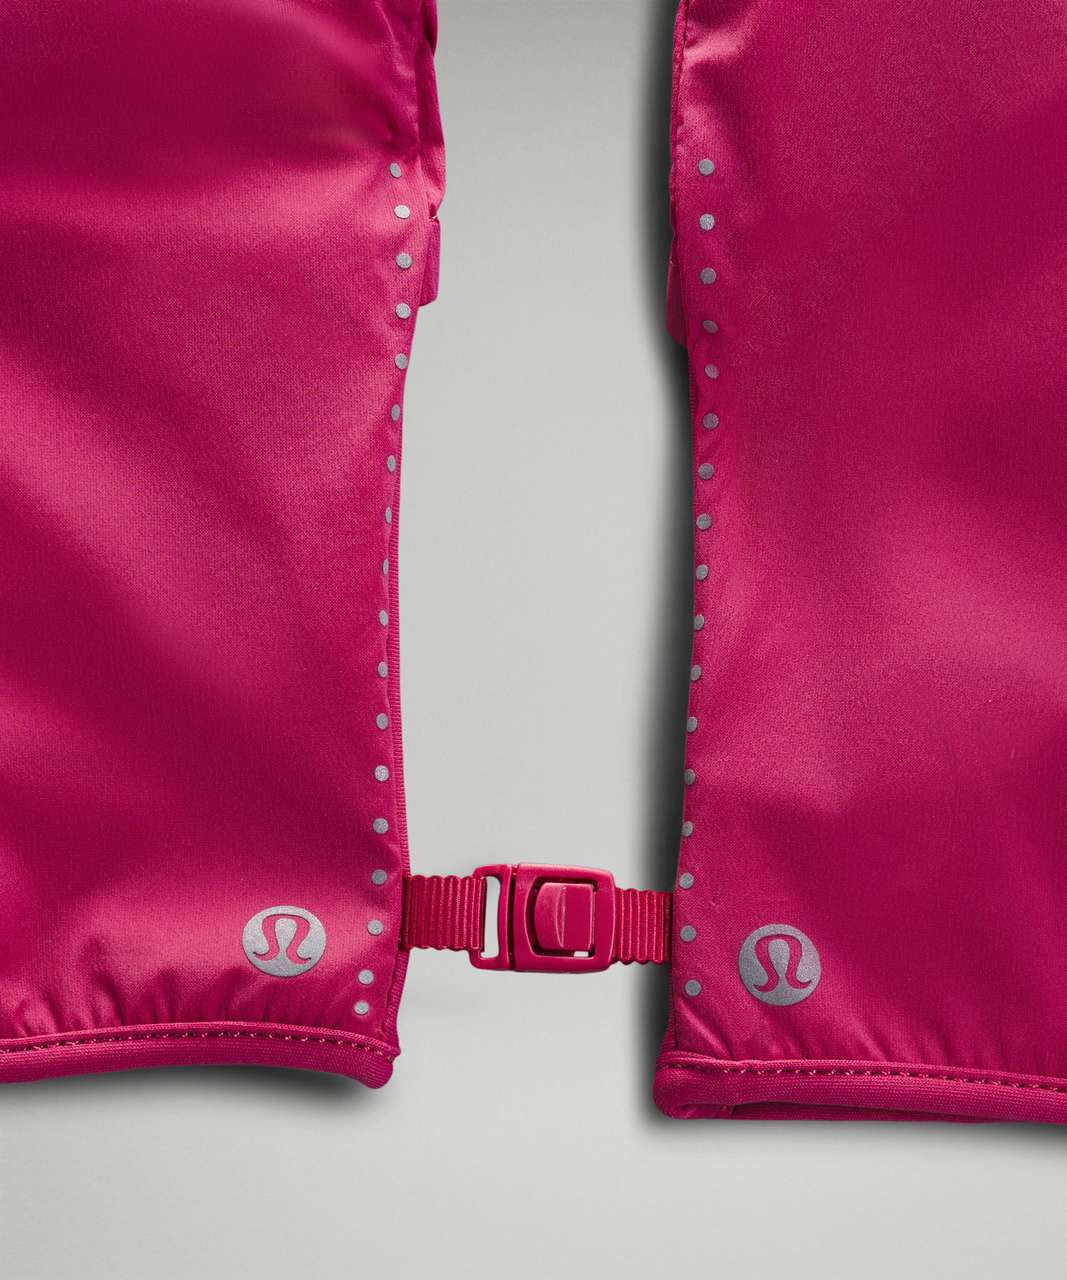 Lululemon Run for It All Hooded Gloves - Pink Lychee